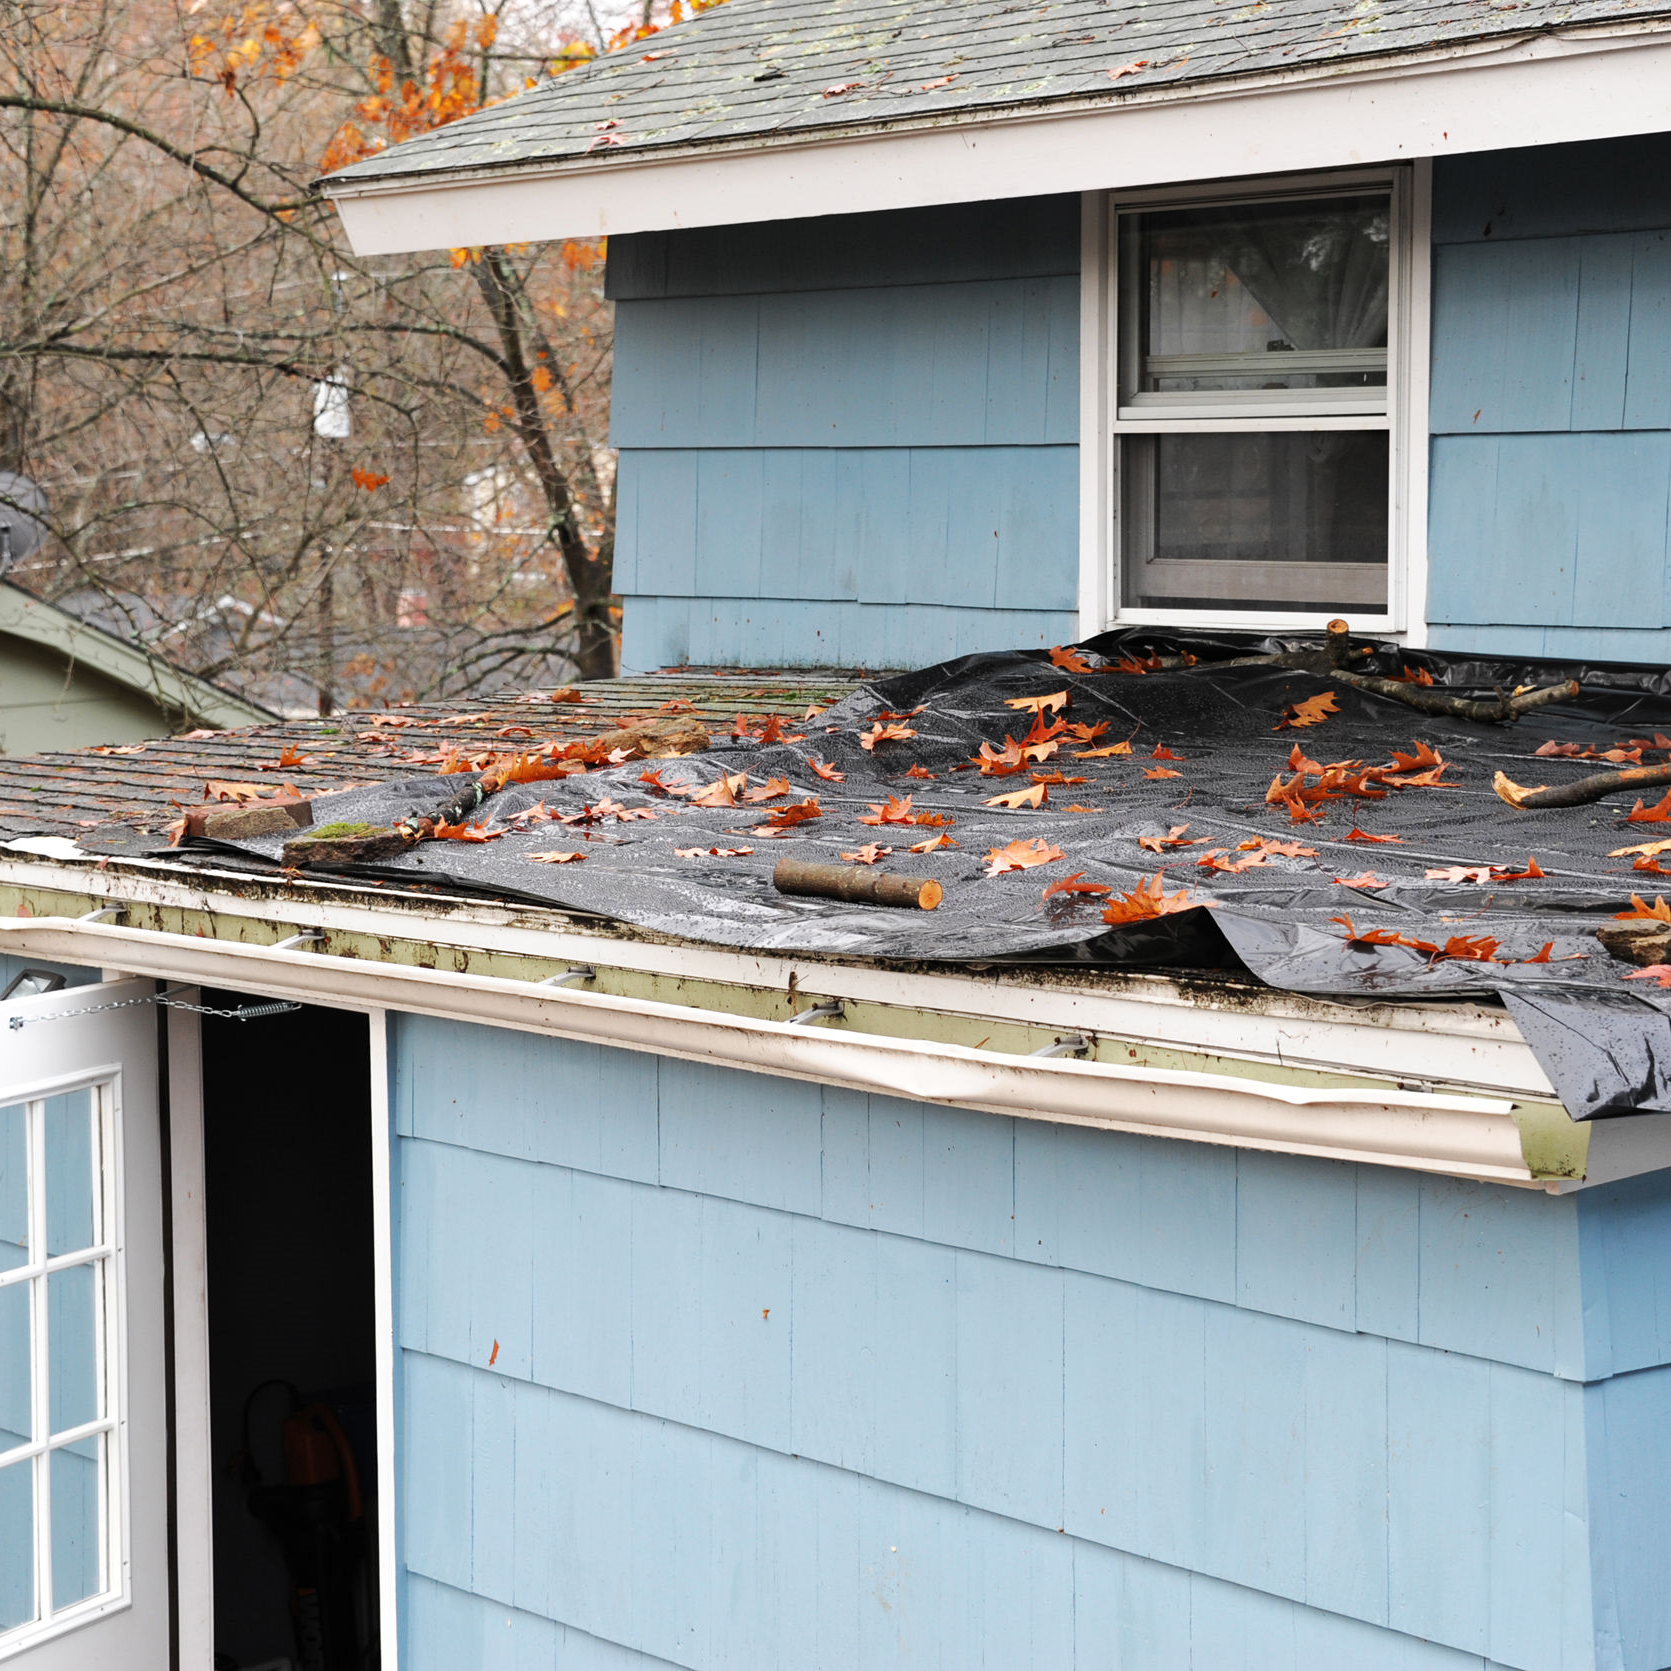 A roof damaged by a strong wind